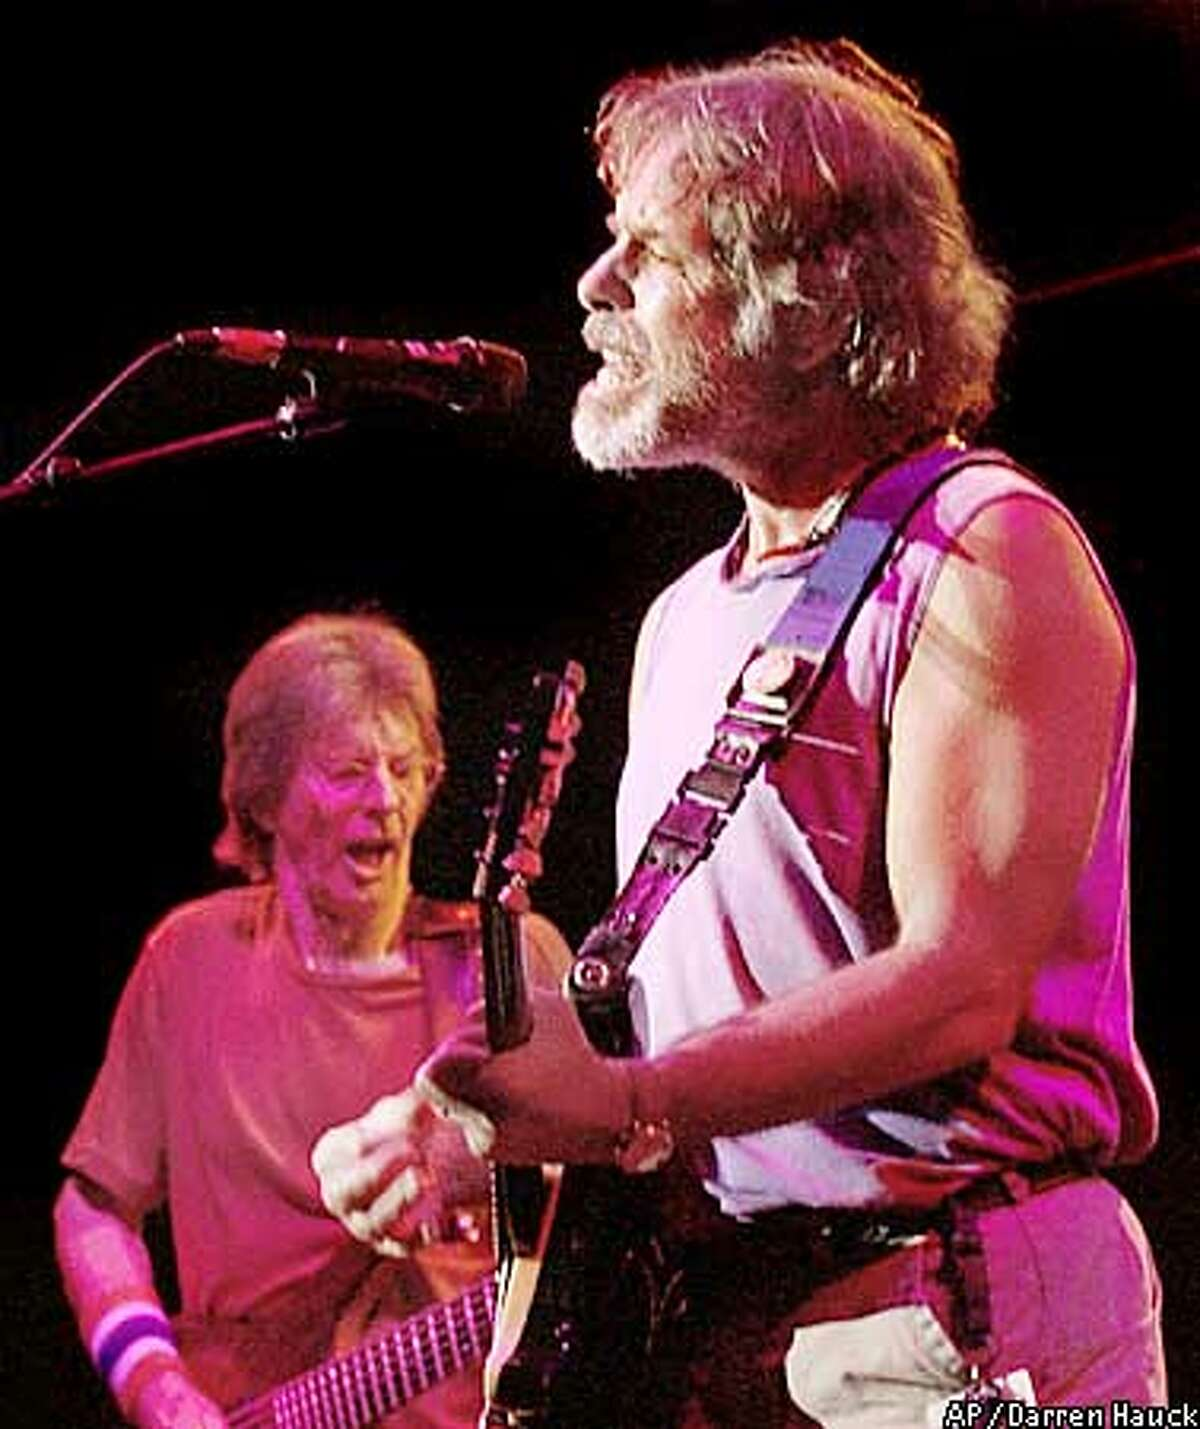 """** FILE ** Bob Weir, right, and Phil Lesh, left, are shown performing in East Troy, Wis., in this Aug. 4, 2002, file photo. Weir, Lesh and fellow former Grateful Dead band members Bill Kreutzman and Mickey Hart renamed themselves The Other Ones after the death of lead guitarist Jerry Garcia. Now they have decided to rename the band once again, this time calling themselves, simply, The Dead. """"With the greatest possible respect to our collective history, we have decided to keep the name 'Grateful Dead' retired in honor of Jerry's memory, and call ourselves: 'The Dead',"""" the band said. (AP Photo/ Darren Hauck, File)"""